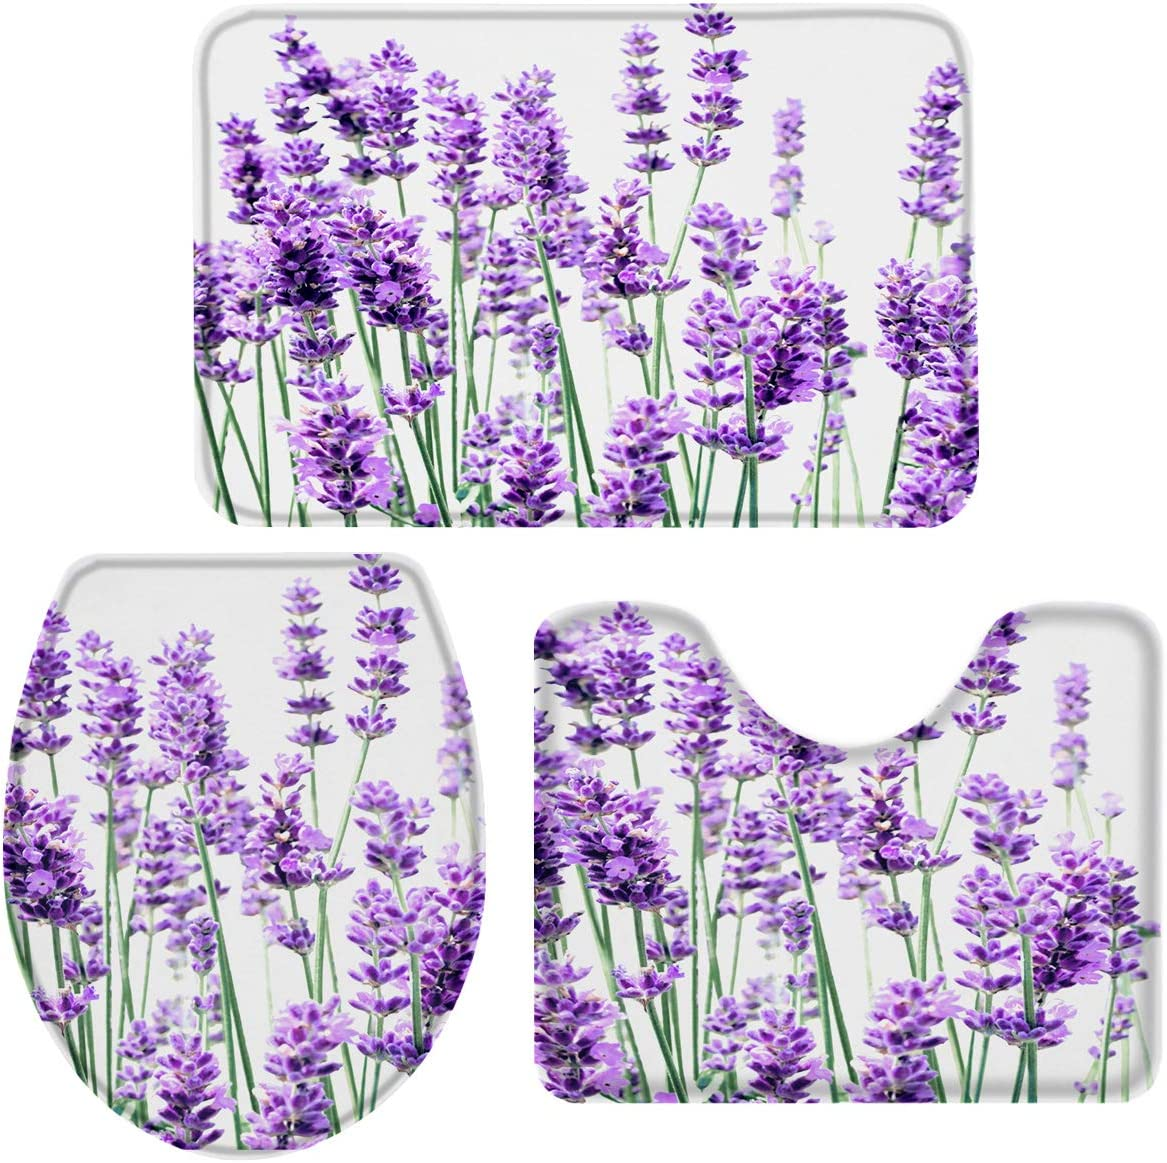 OneHoney 3-Piece Bath Rug and Mat Sets, Purple Lavender Flower Non-Slip Bathroom Doormat Runner Rugs, Toilet Seat Cover, U-Shaped Toilet Floor Mat Nature Floral Plant Large